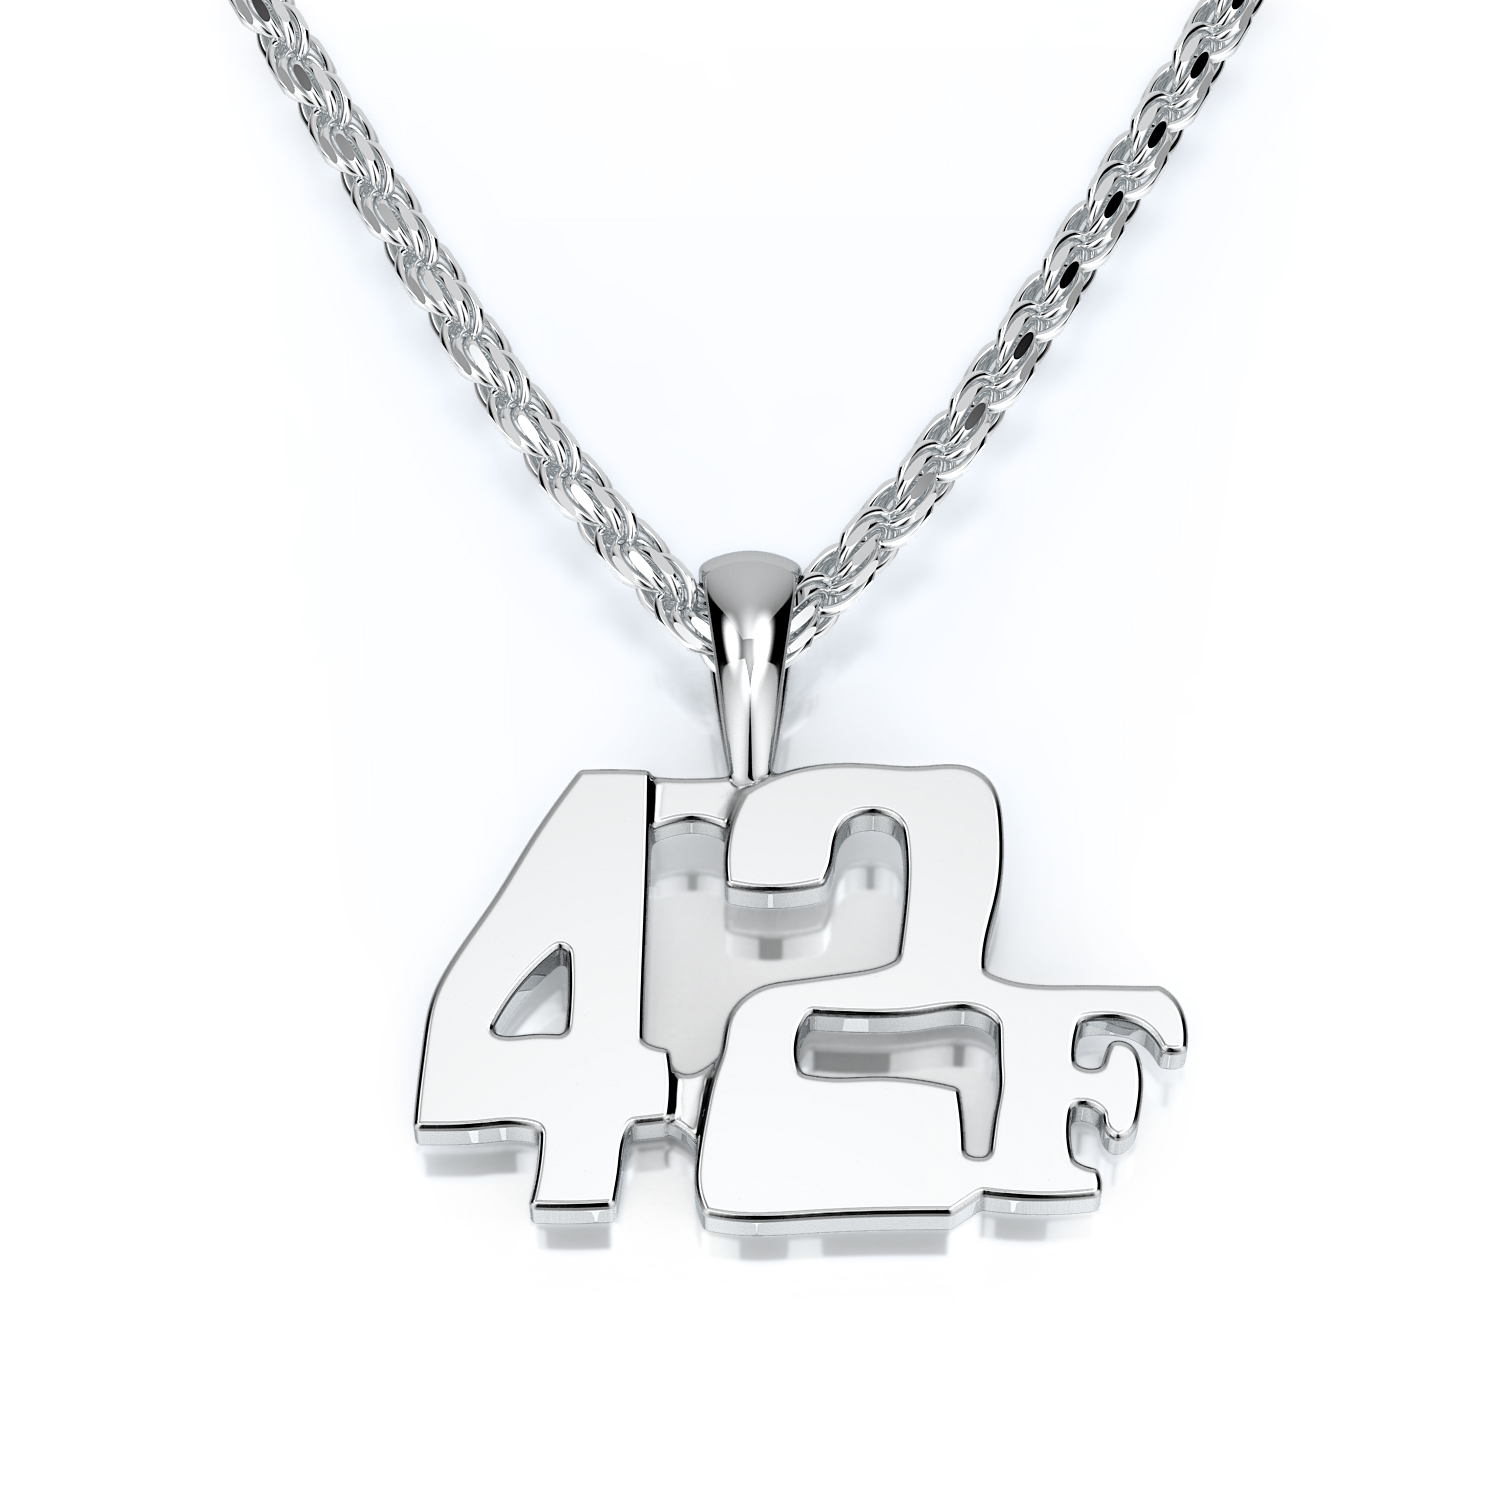 Racer Series Pendant Necklace RSLNPDL product image